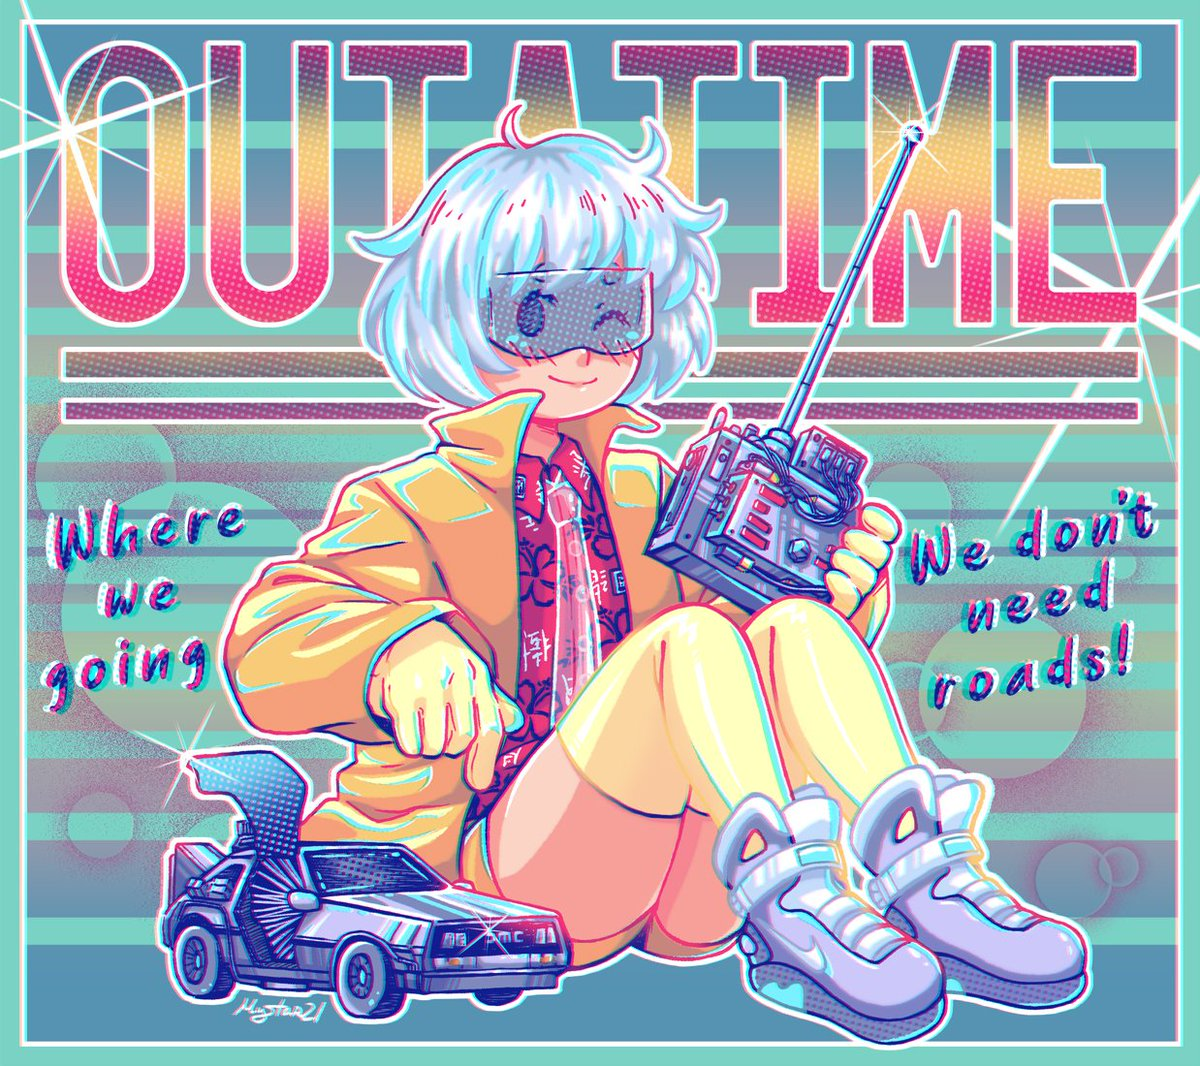 A time machine is what we need right now, and better one with style!! ⚡️⚡️ #myart #illustration #digitalart #fanart #anime #manga #pastel #cute #kawaii #80s #BackToTheFuture #delorean